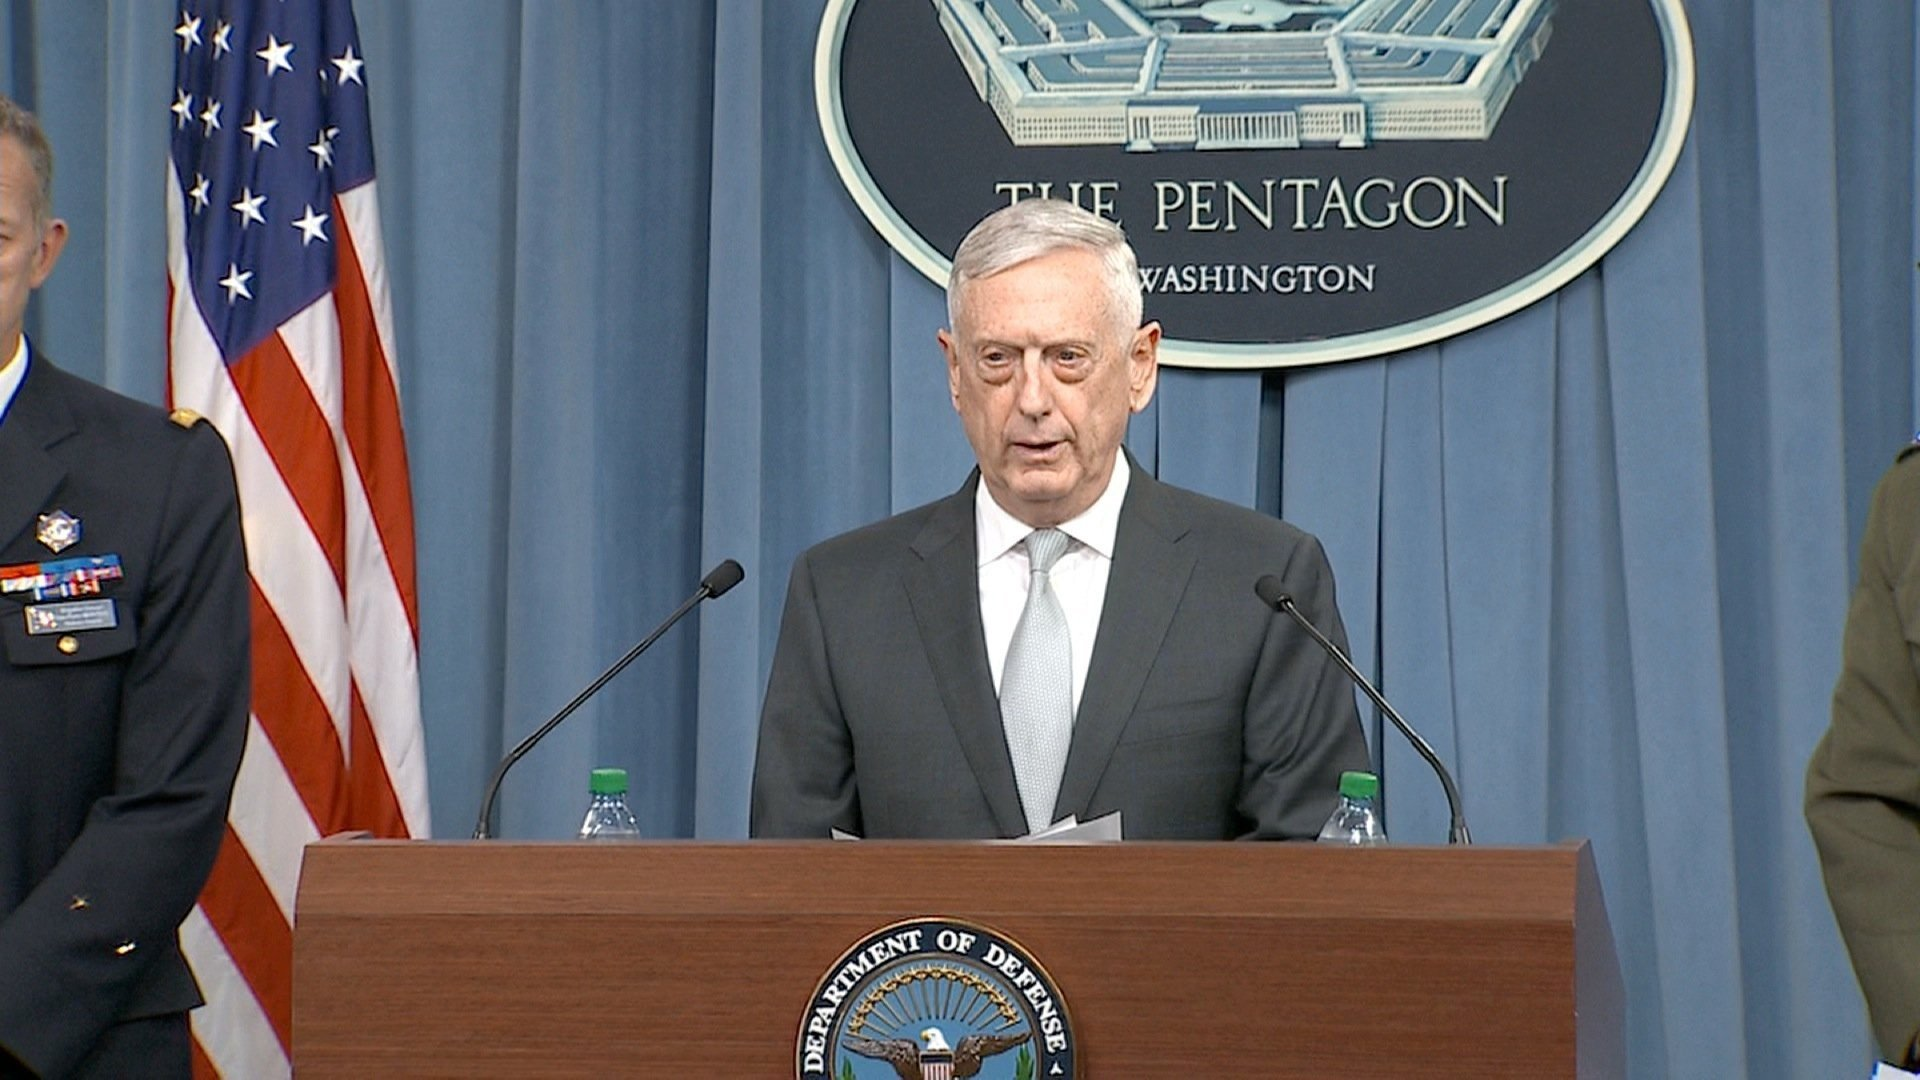 Defense Secretary James Mattis speaks during a Pentagon briefing after President Trump announced U.S. strikes on Syria.